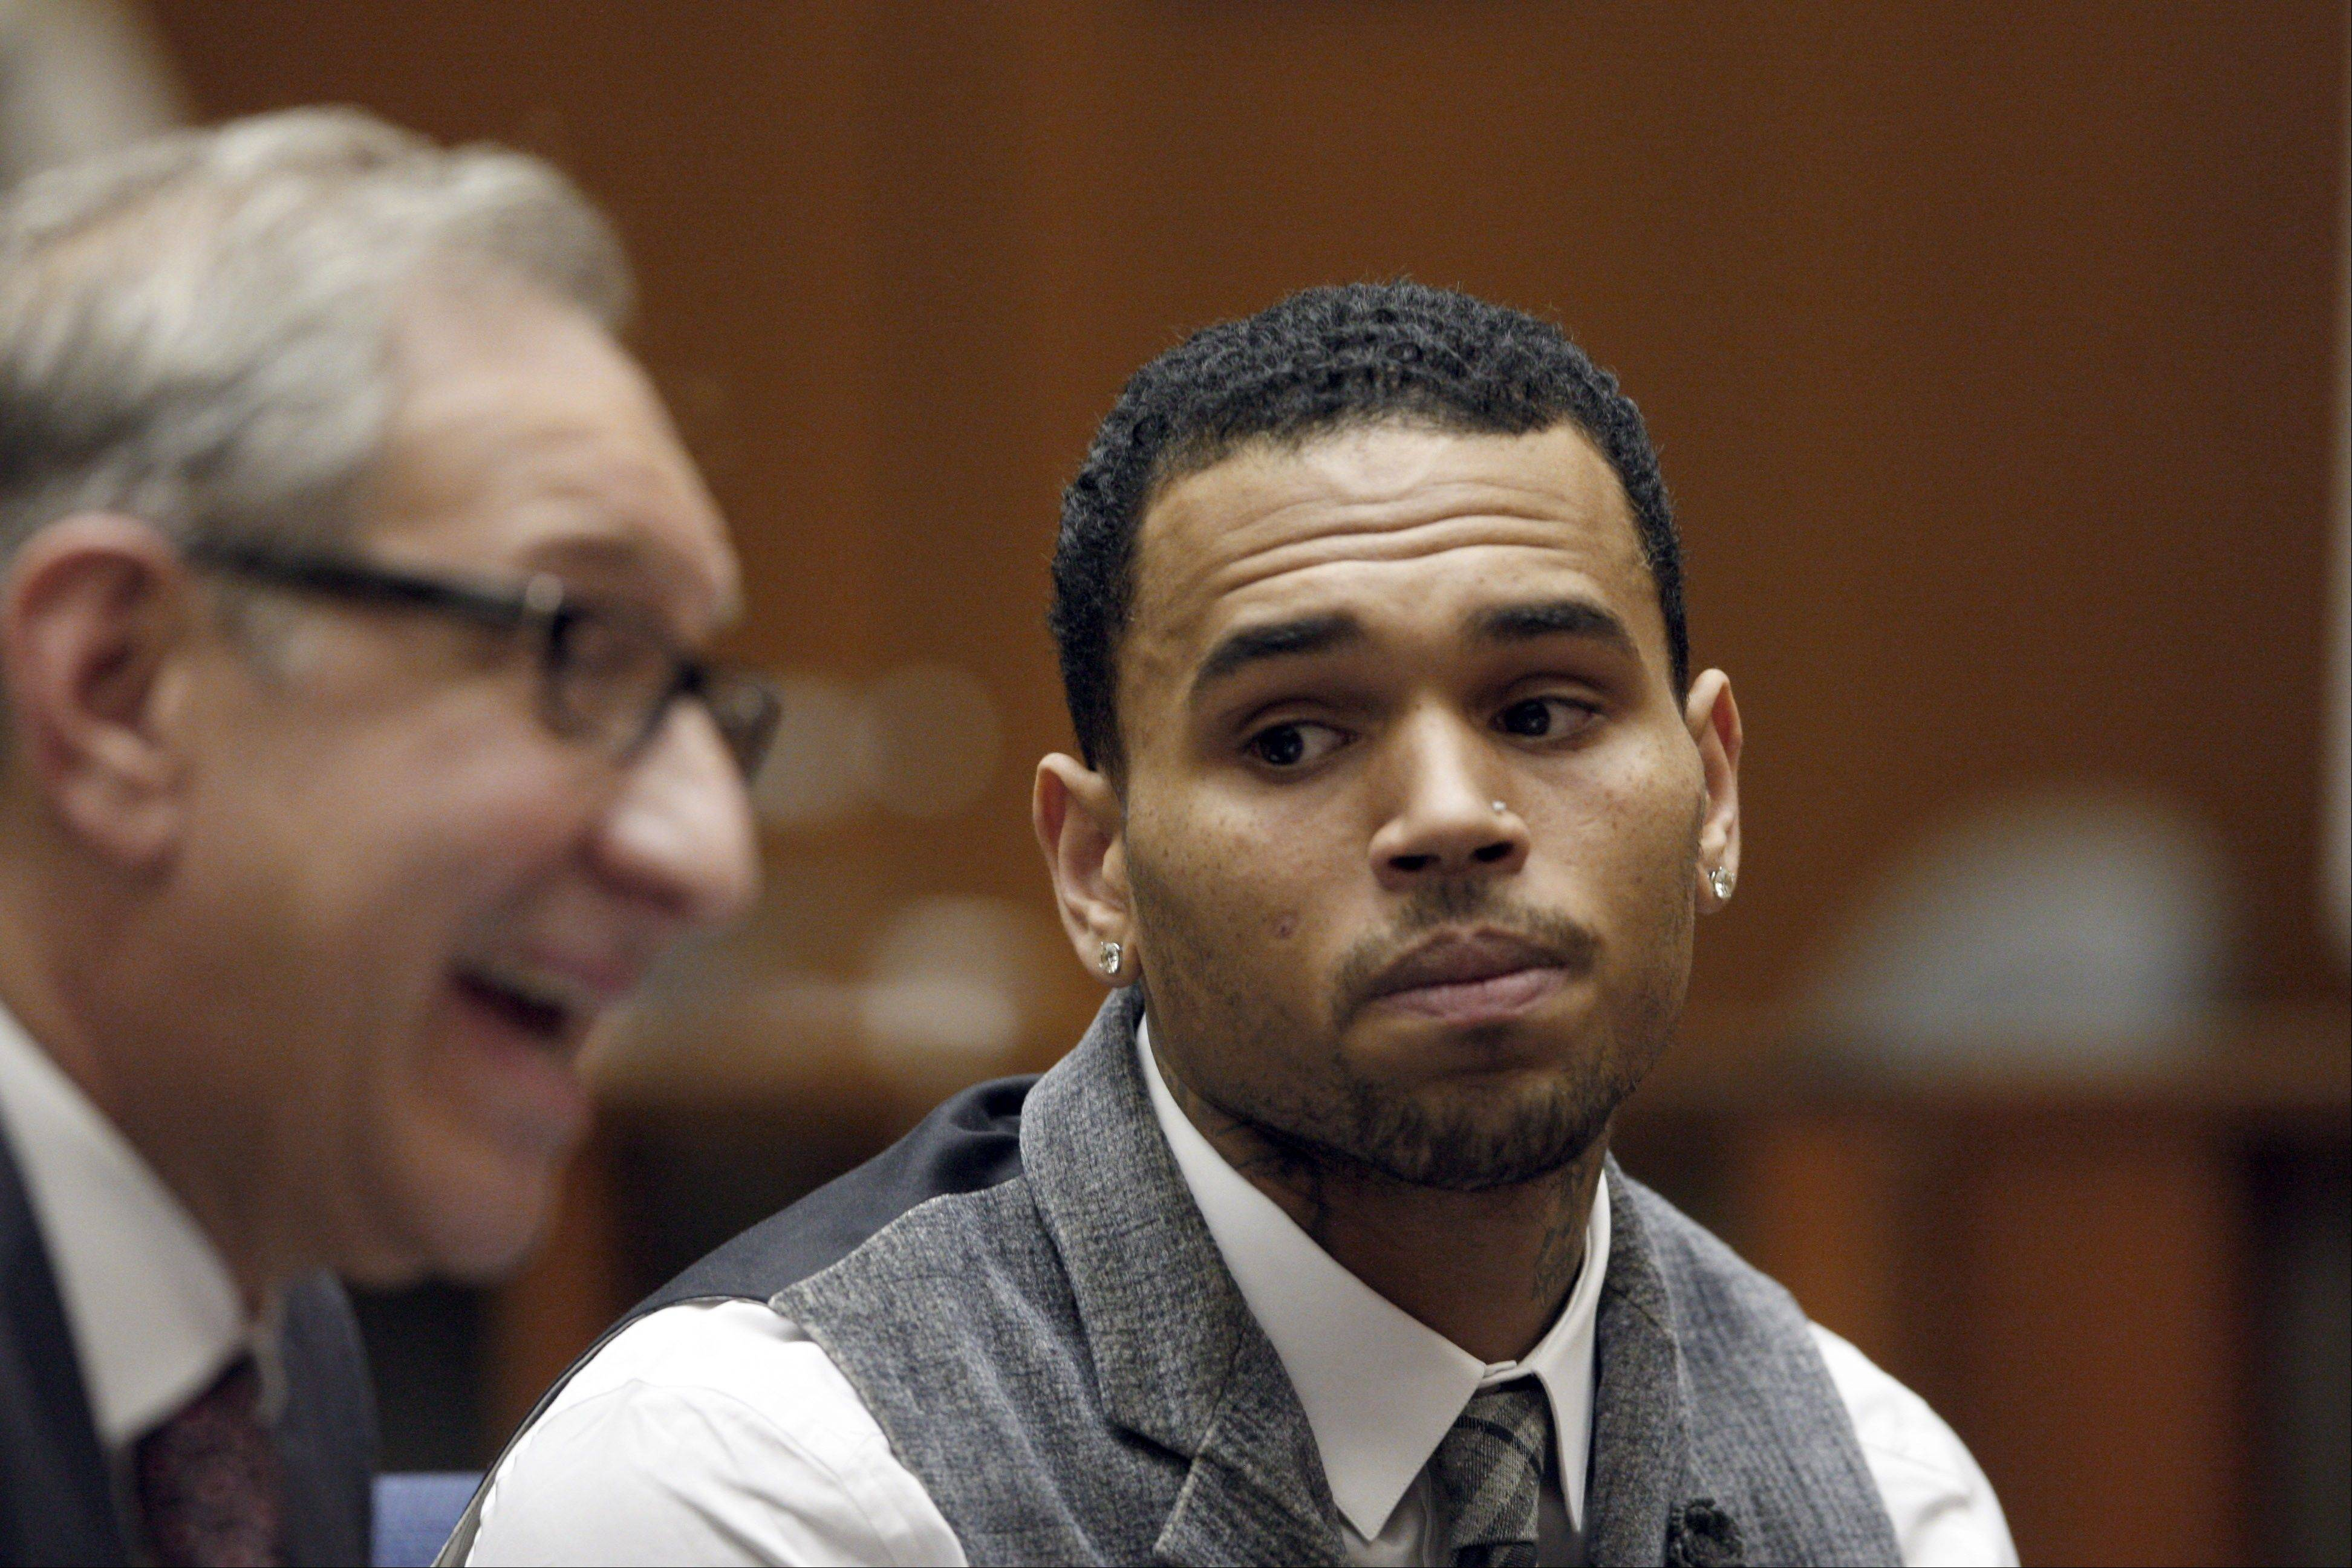 Judge Patricia Schnegg has ordered a further review of Chris Brown's community service and travel to determine whether he has violated the terms of his probation for the 2009 beating of then-girlfriend Rihanna.